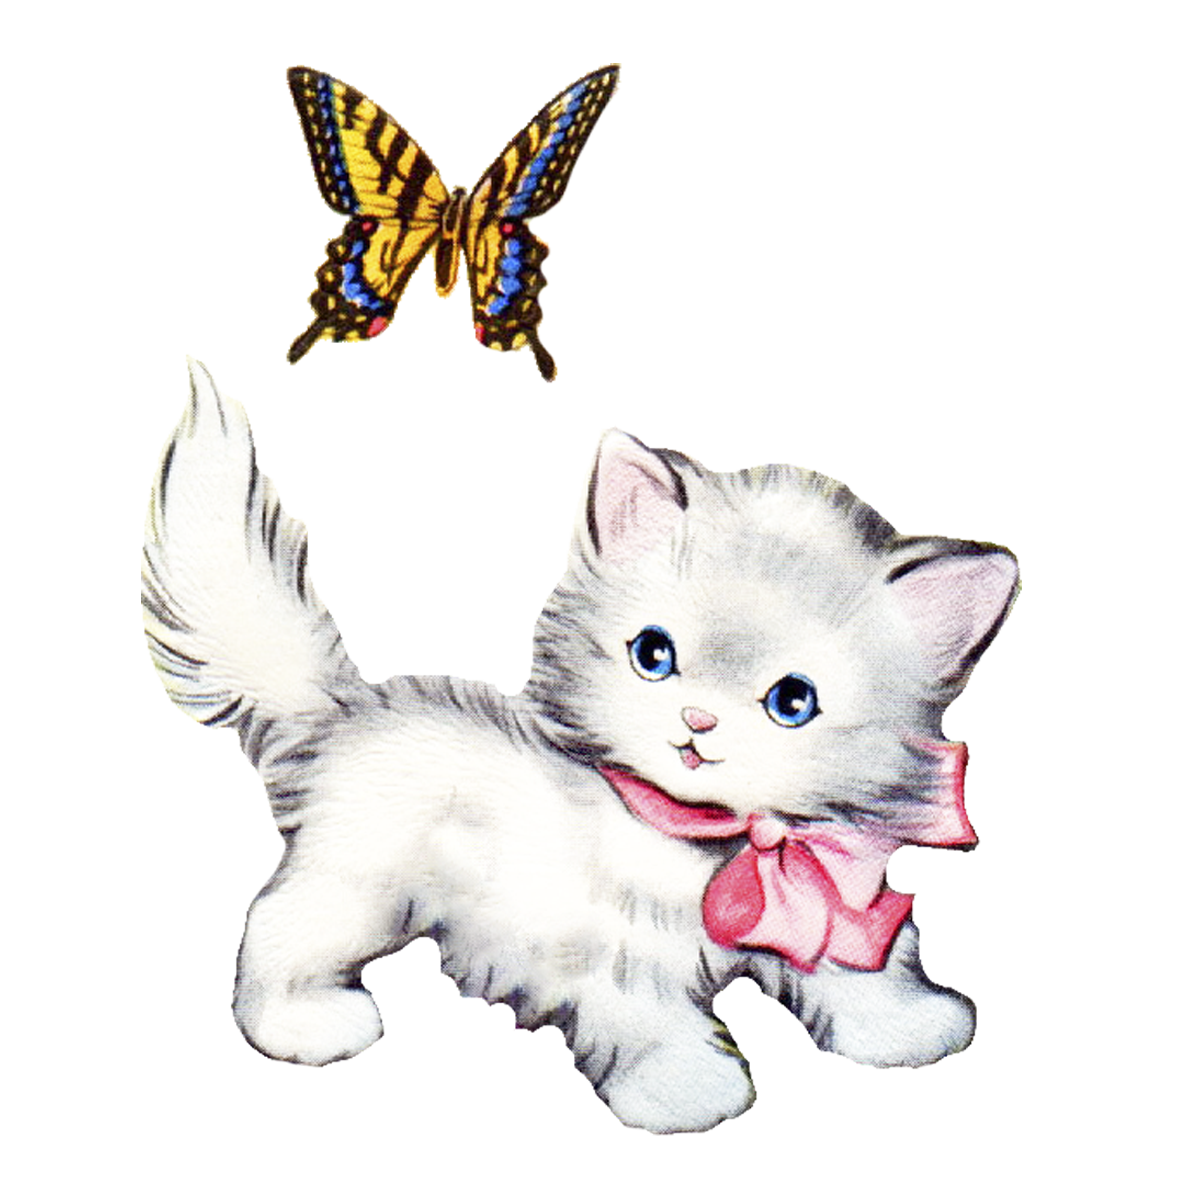 Kitten willow clipart 20 free Cliparts | Download images ...